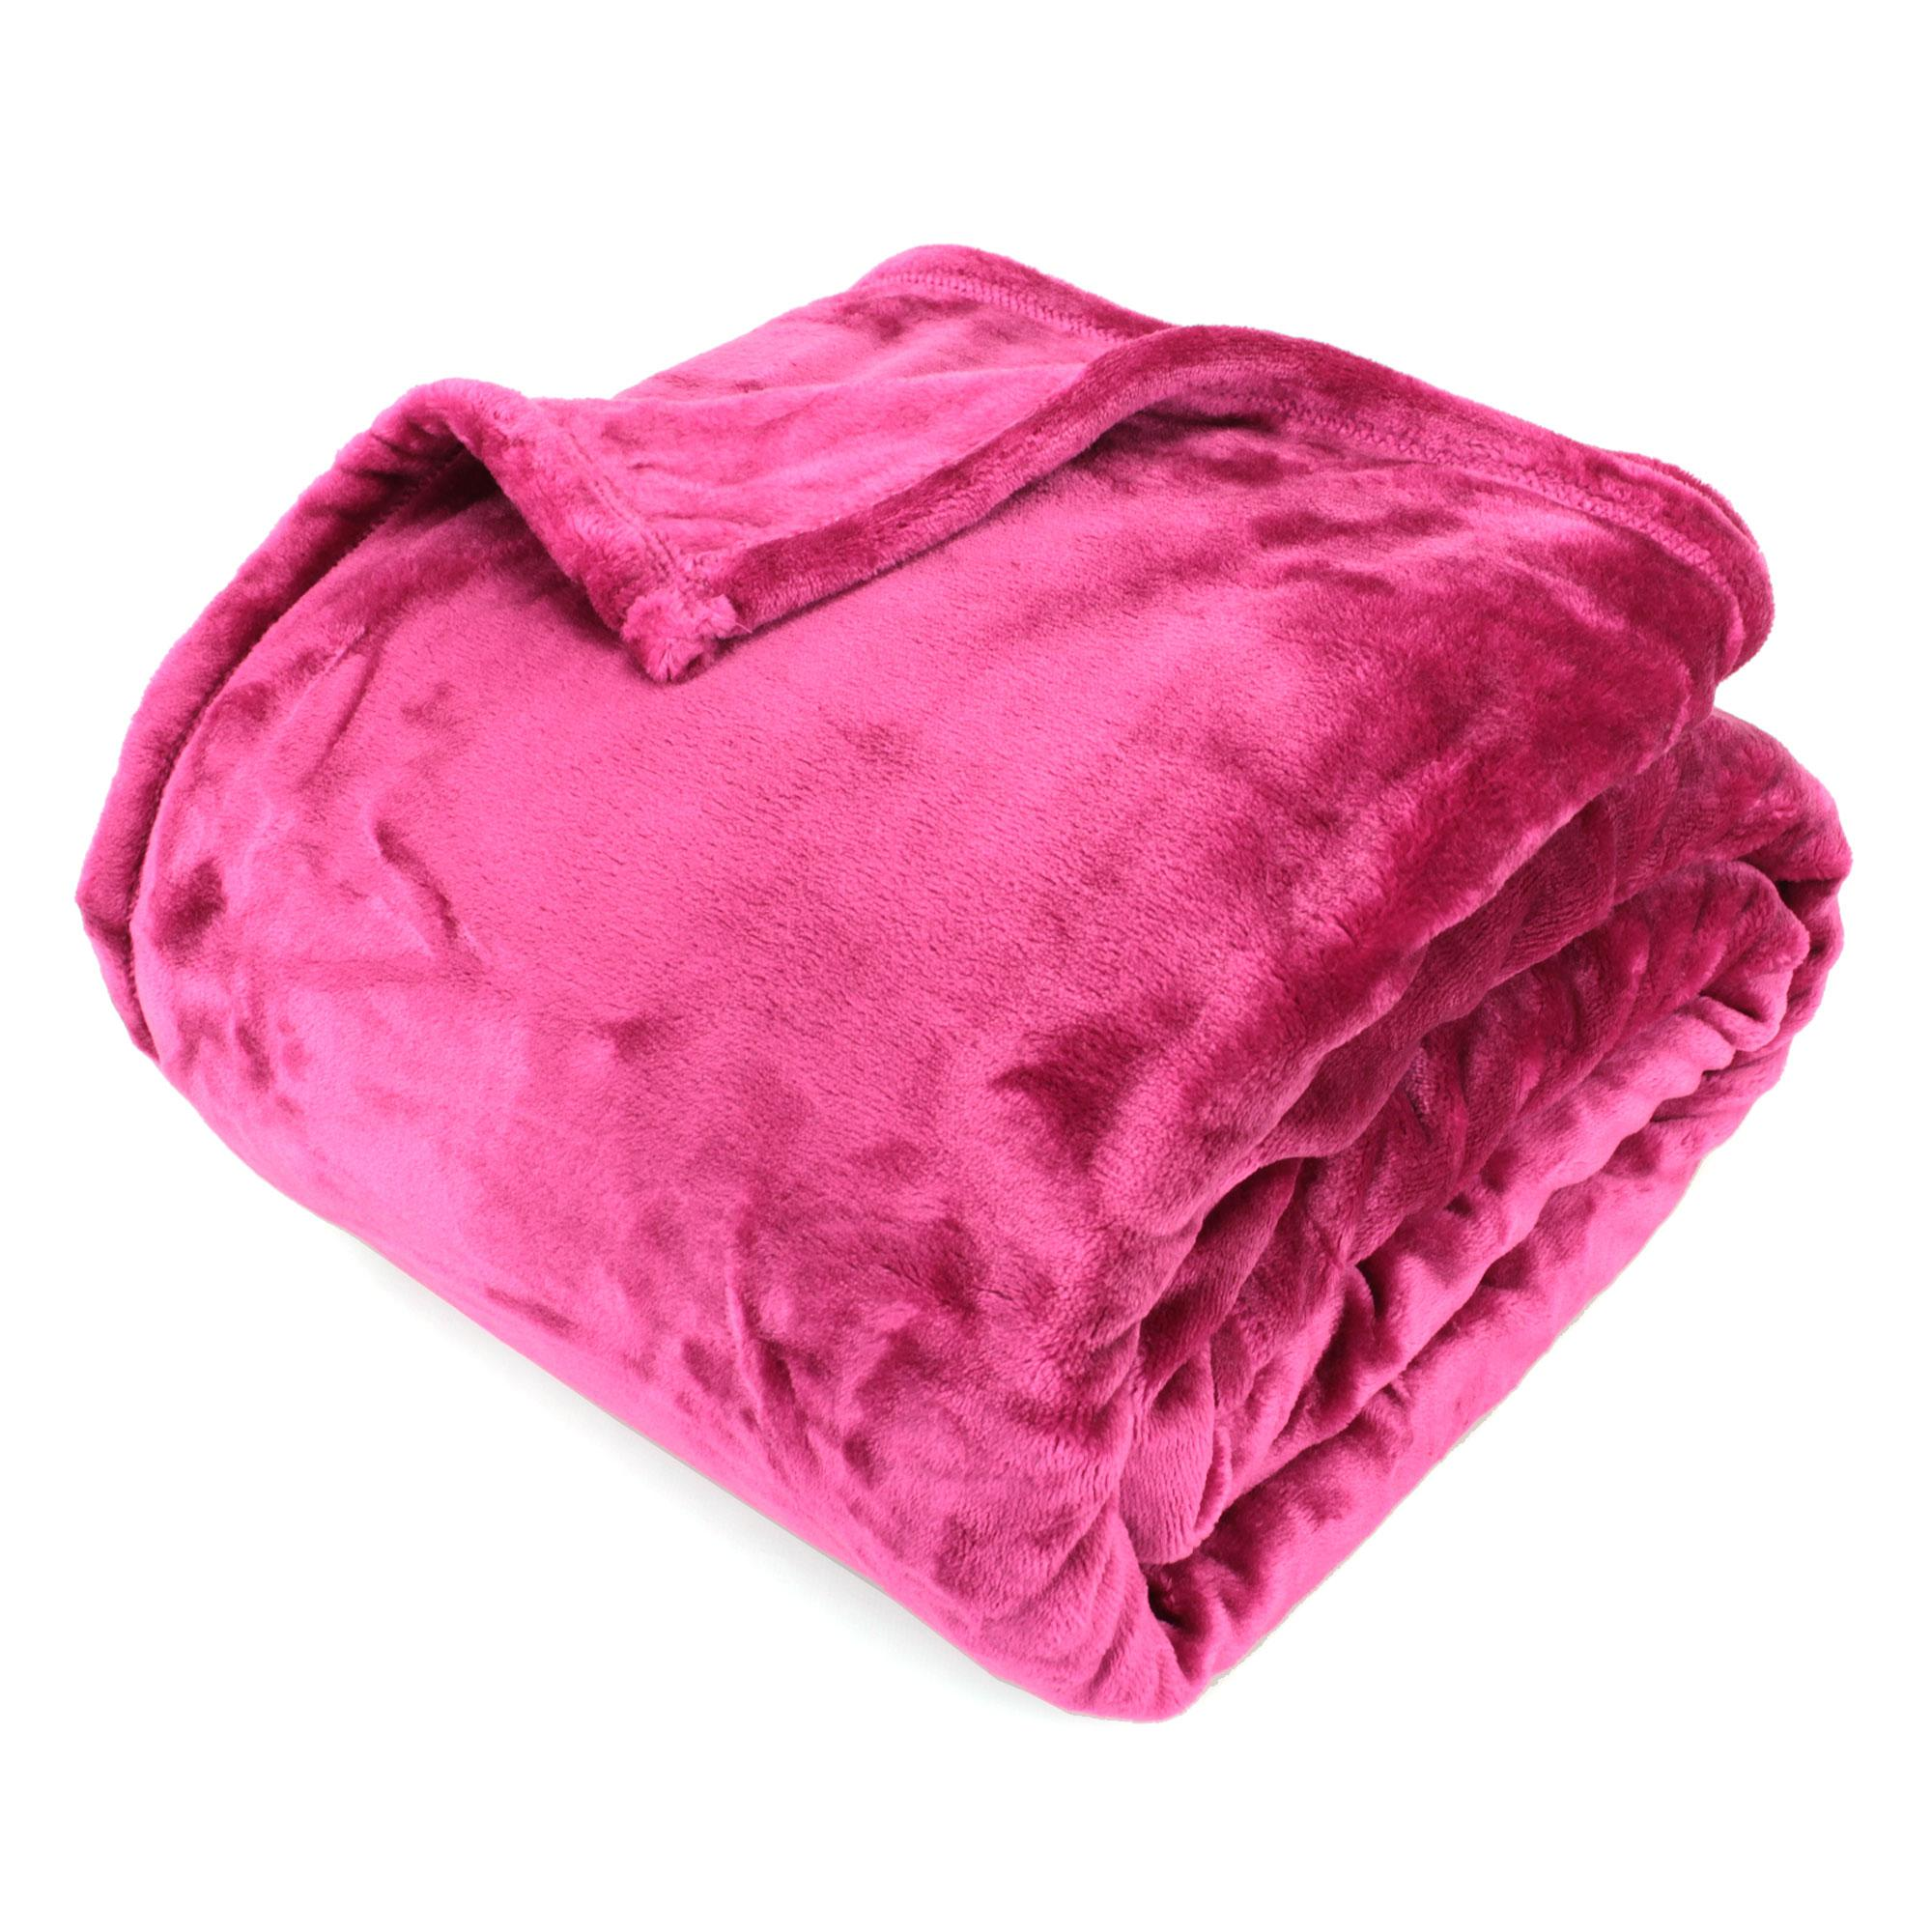 couverture microfibre 180x240 cm velvet framboise linnea vente de linge de maison. Black Bedroom Furniture Sets. Home Design Ideas